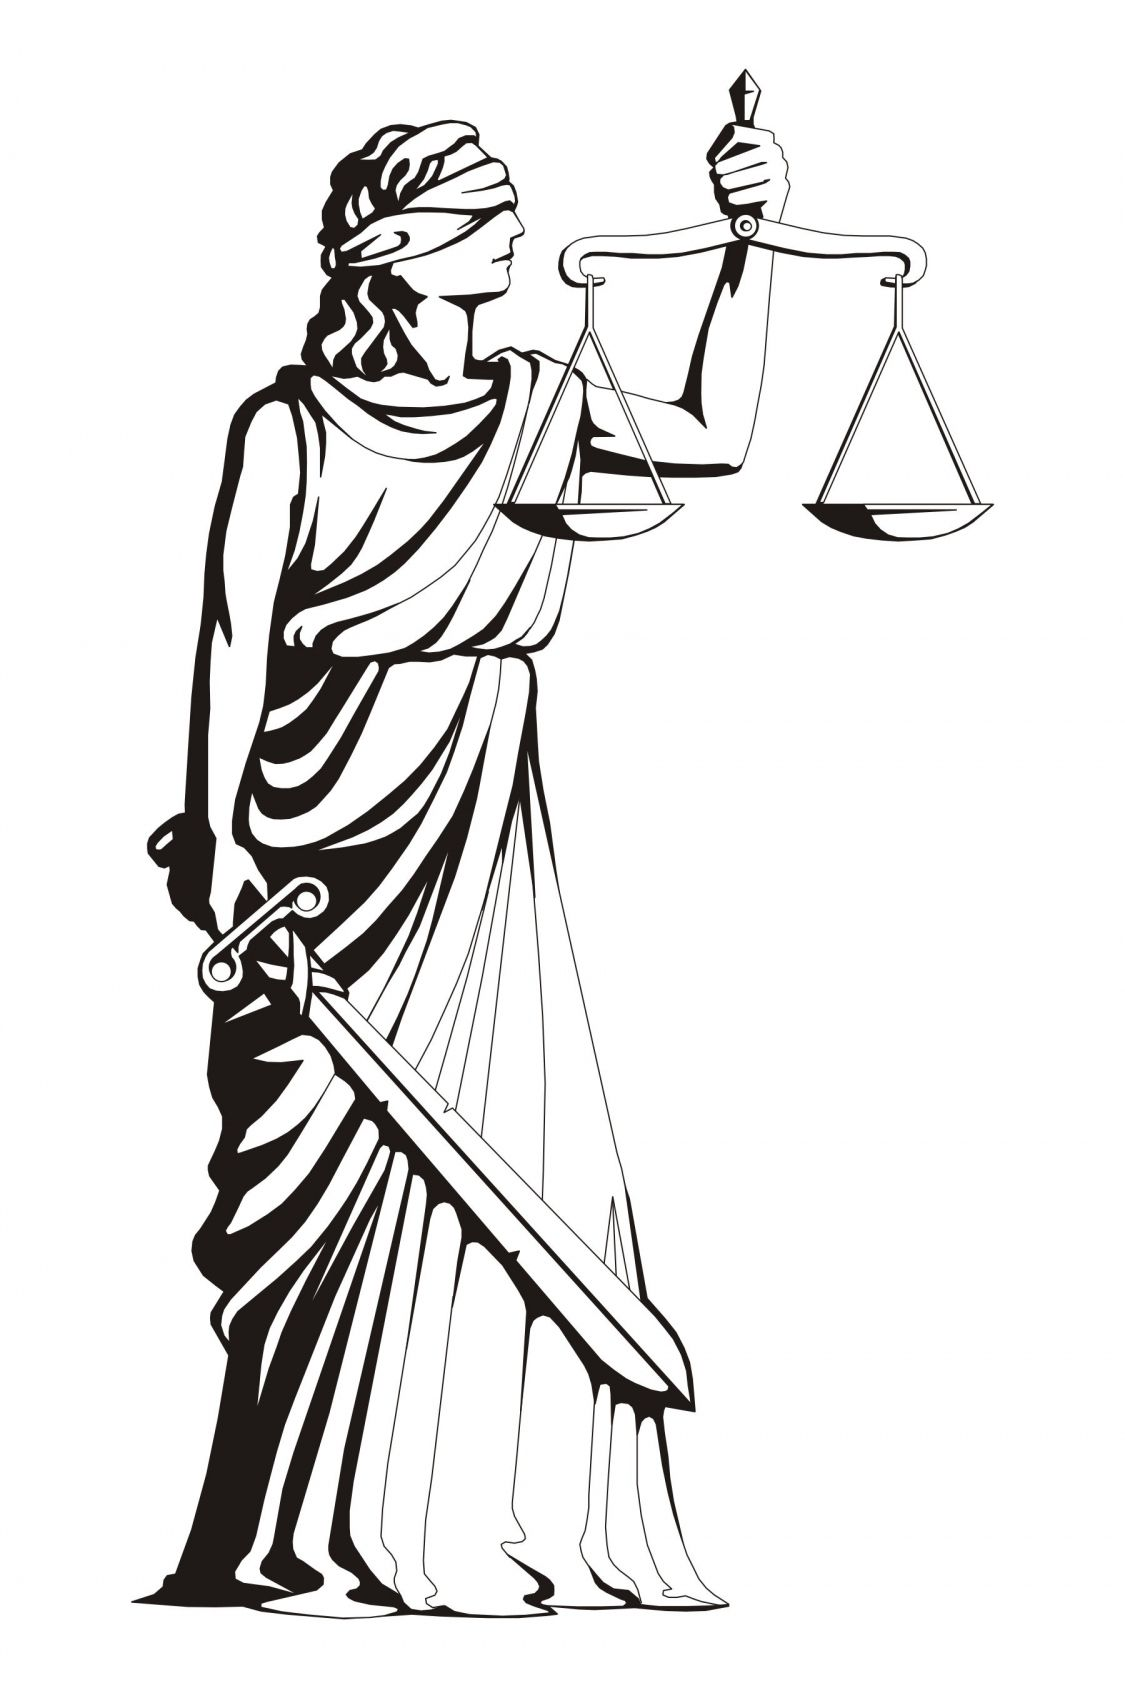 Justice Wipo In 2018 Pinterest Lady Justice Justice Tattoo